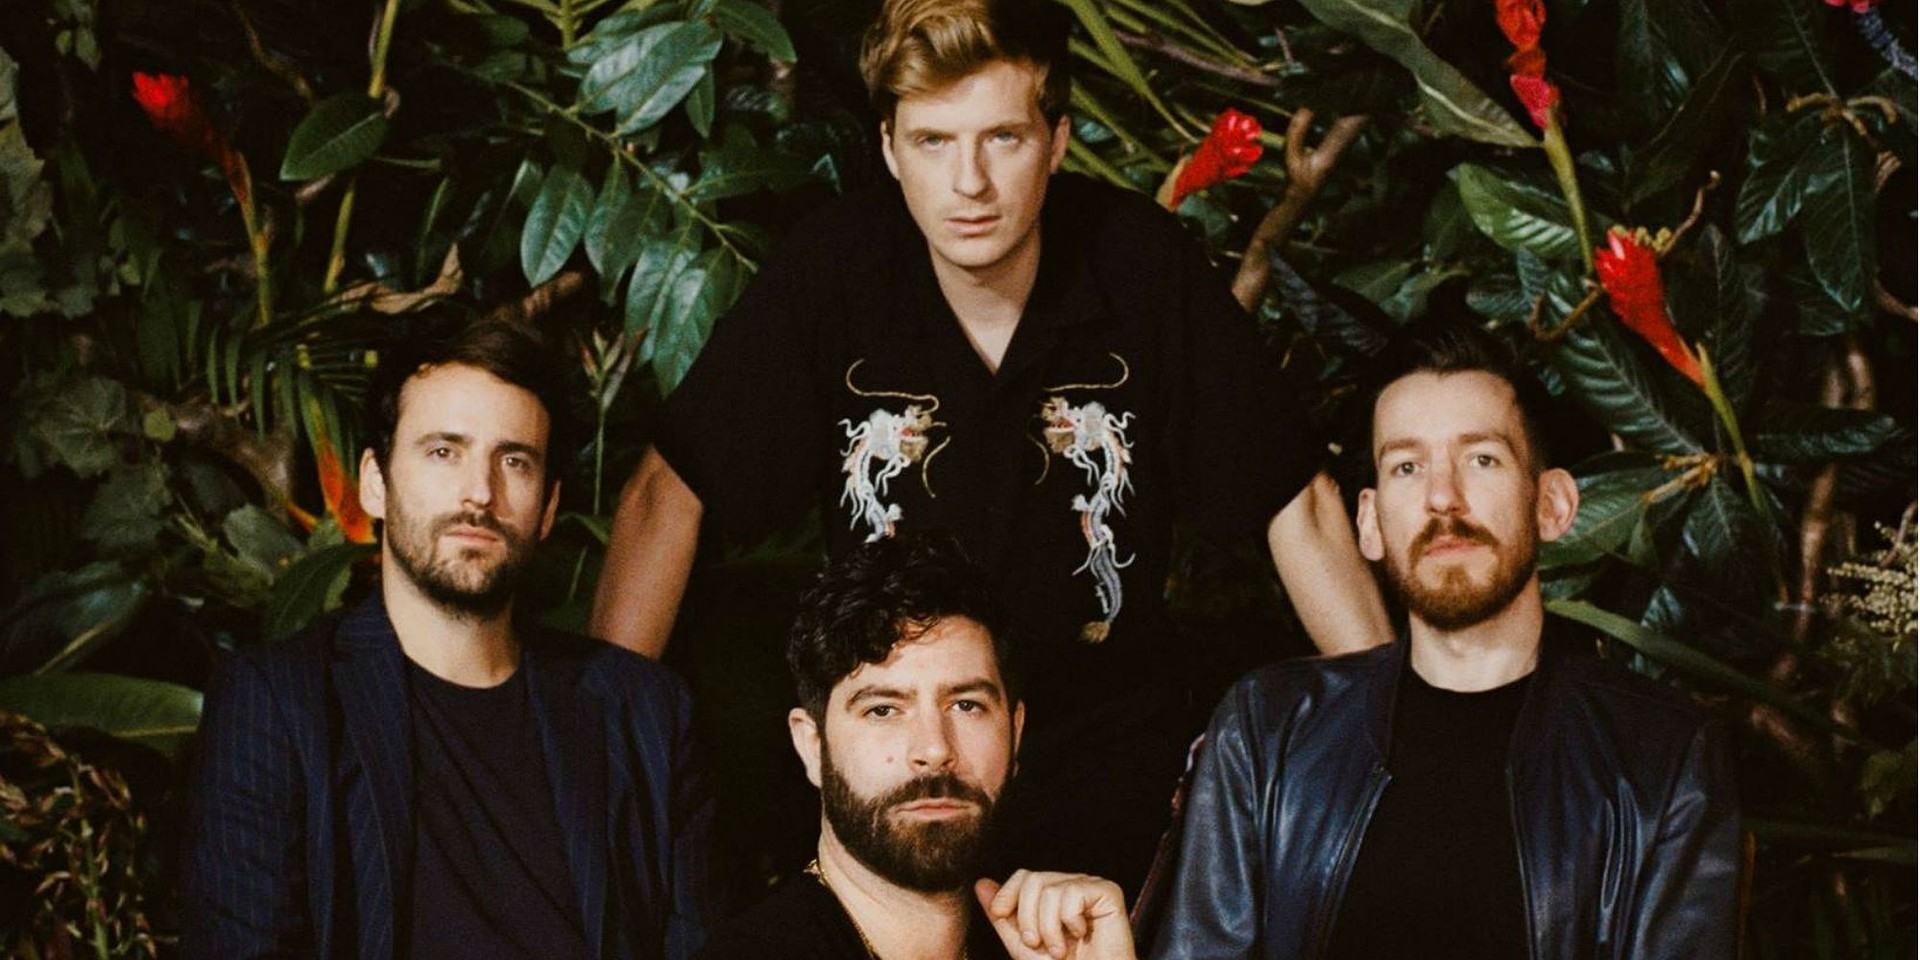 Foals return to form with new track 'Exits' – track review